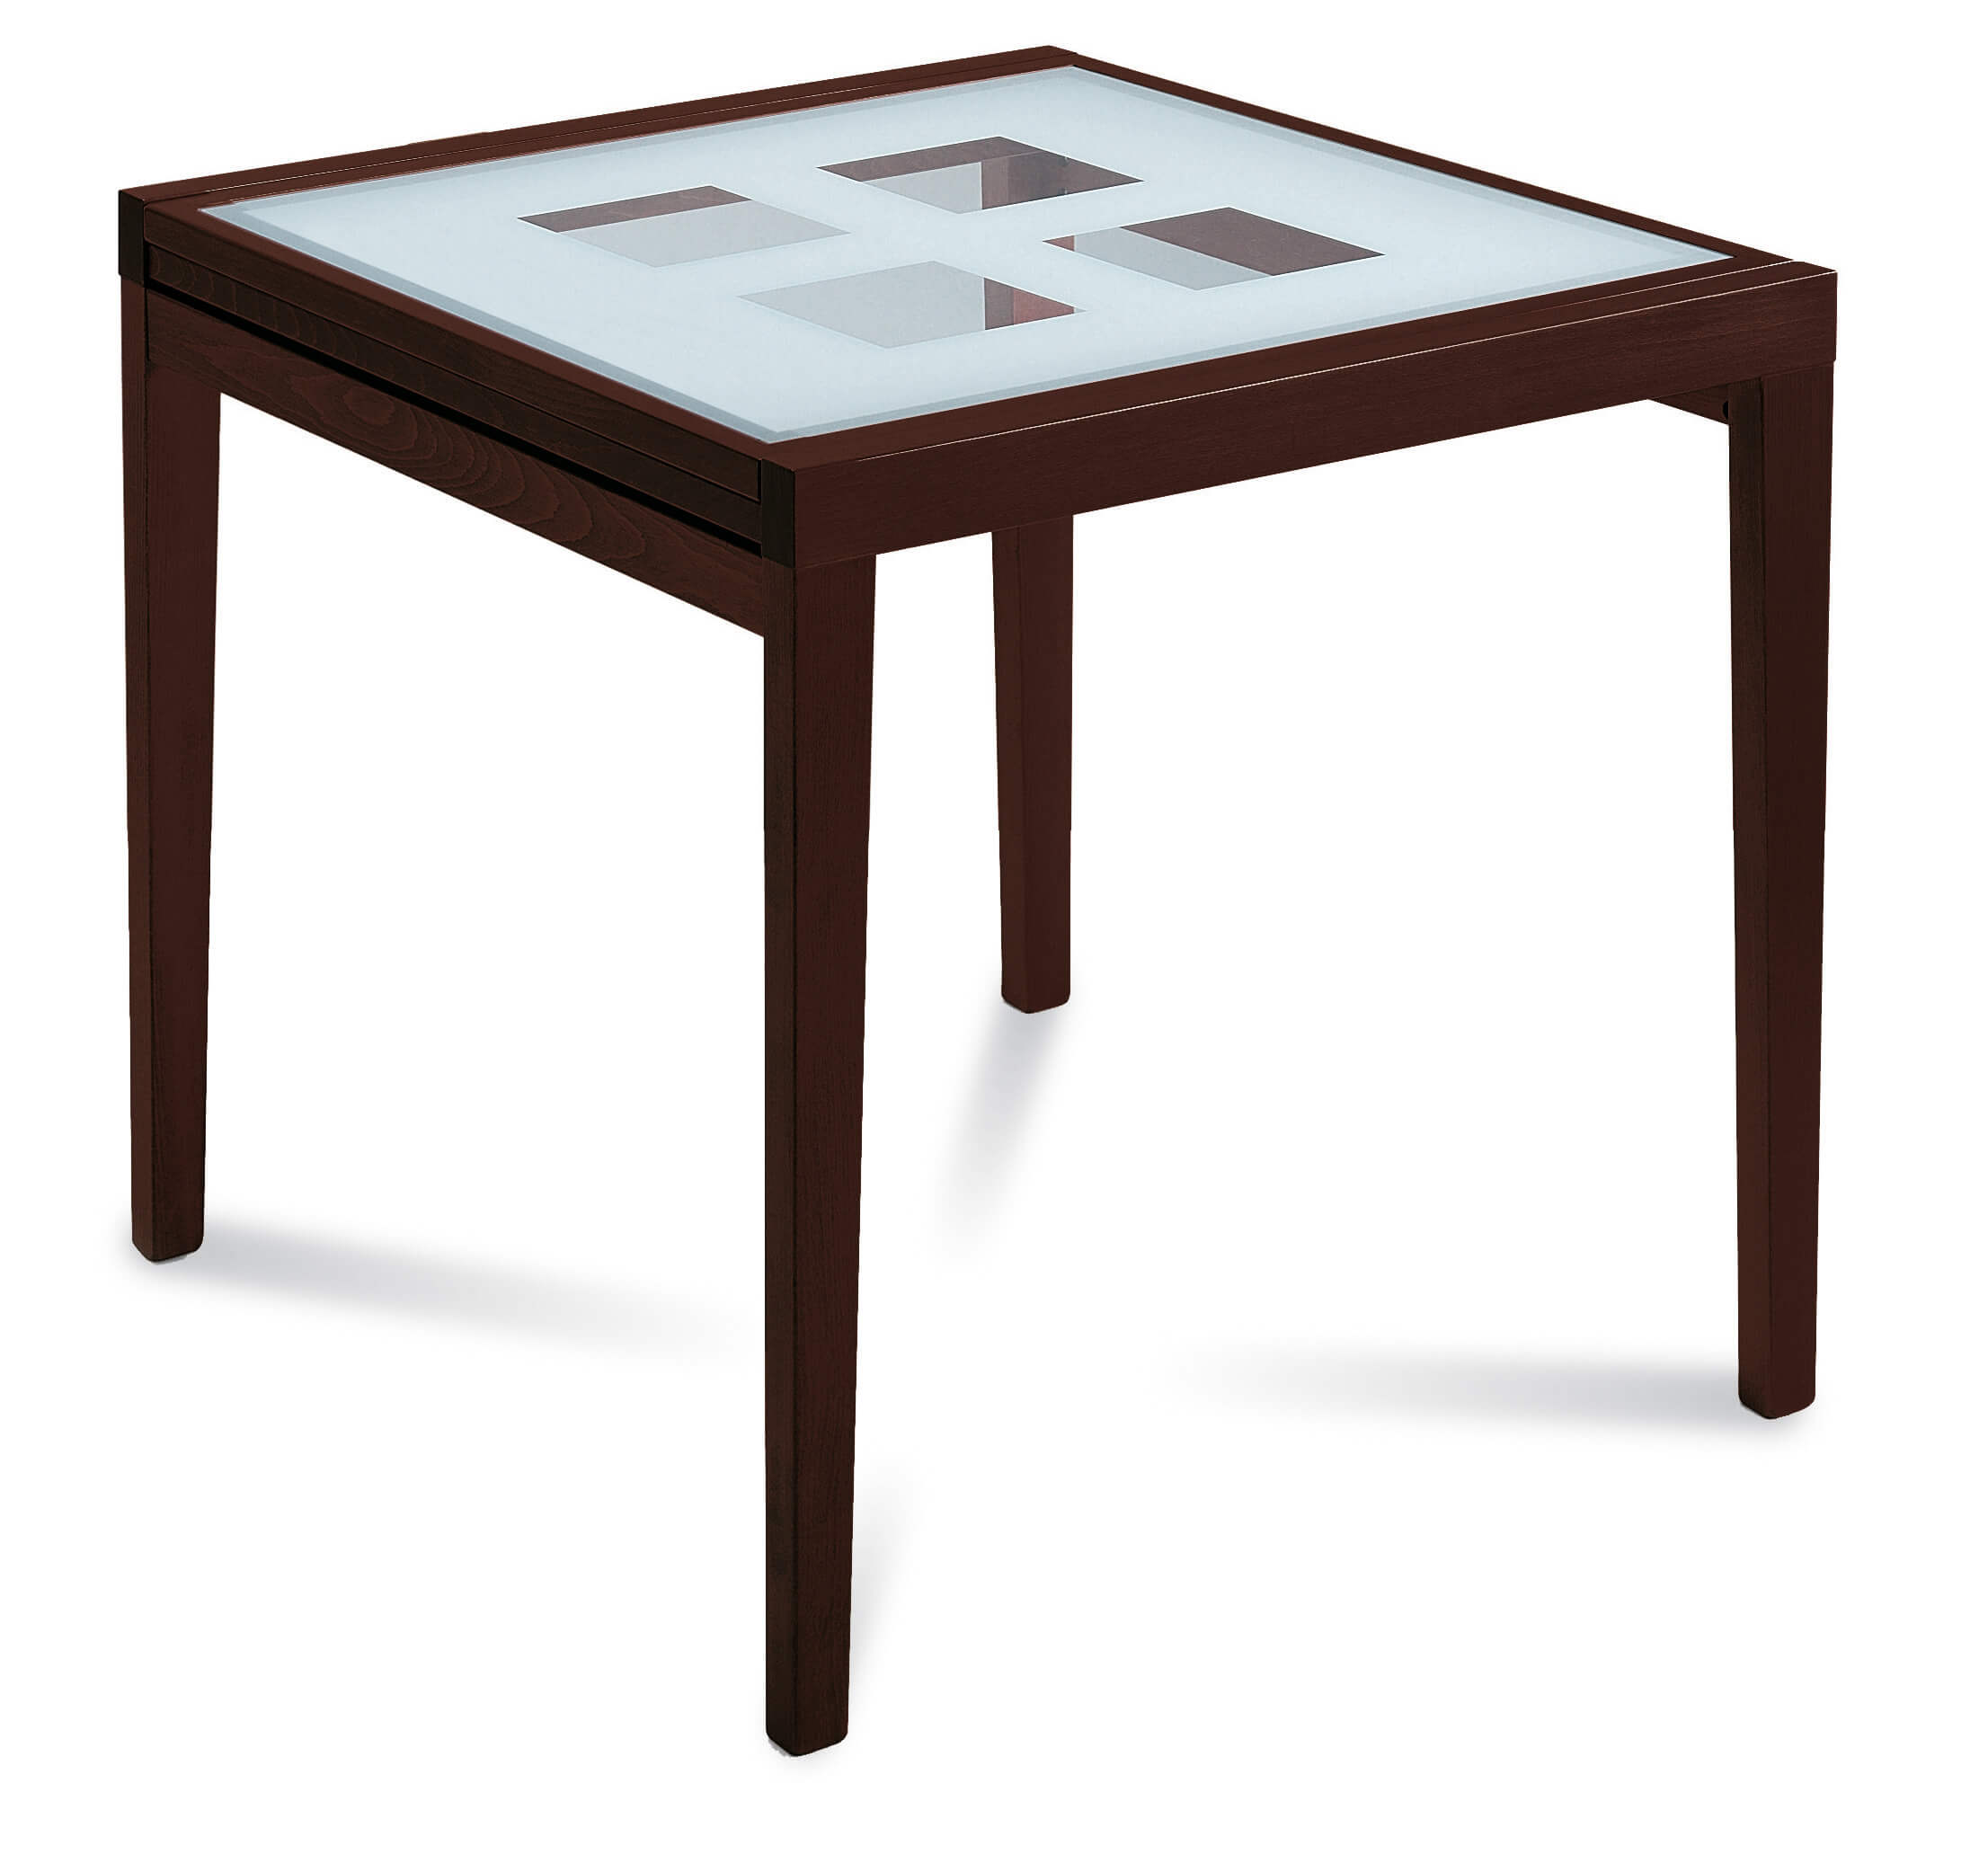 Poker-B90 Counter/Square Table by DomItalia, Italy